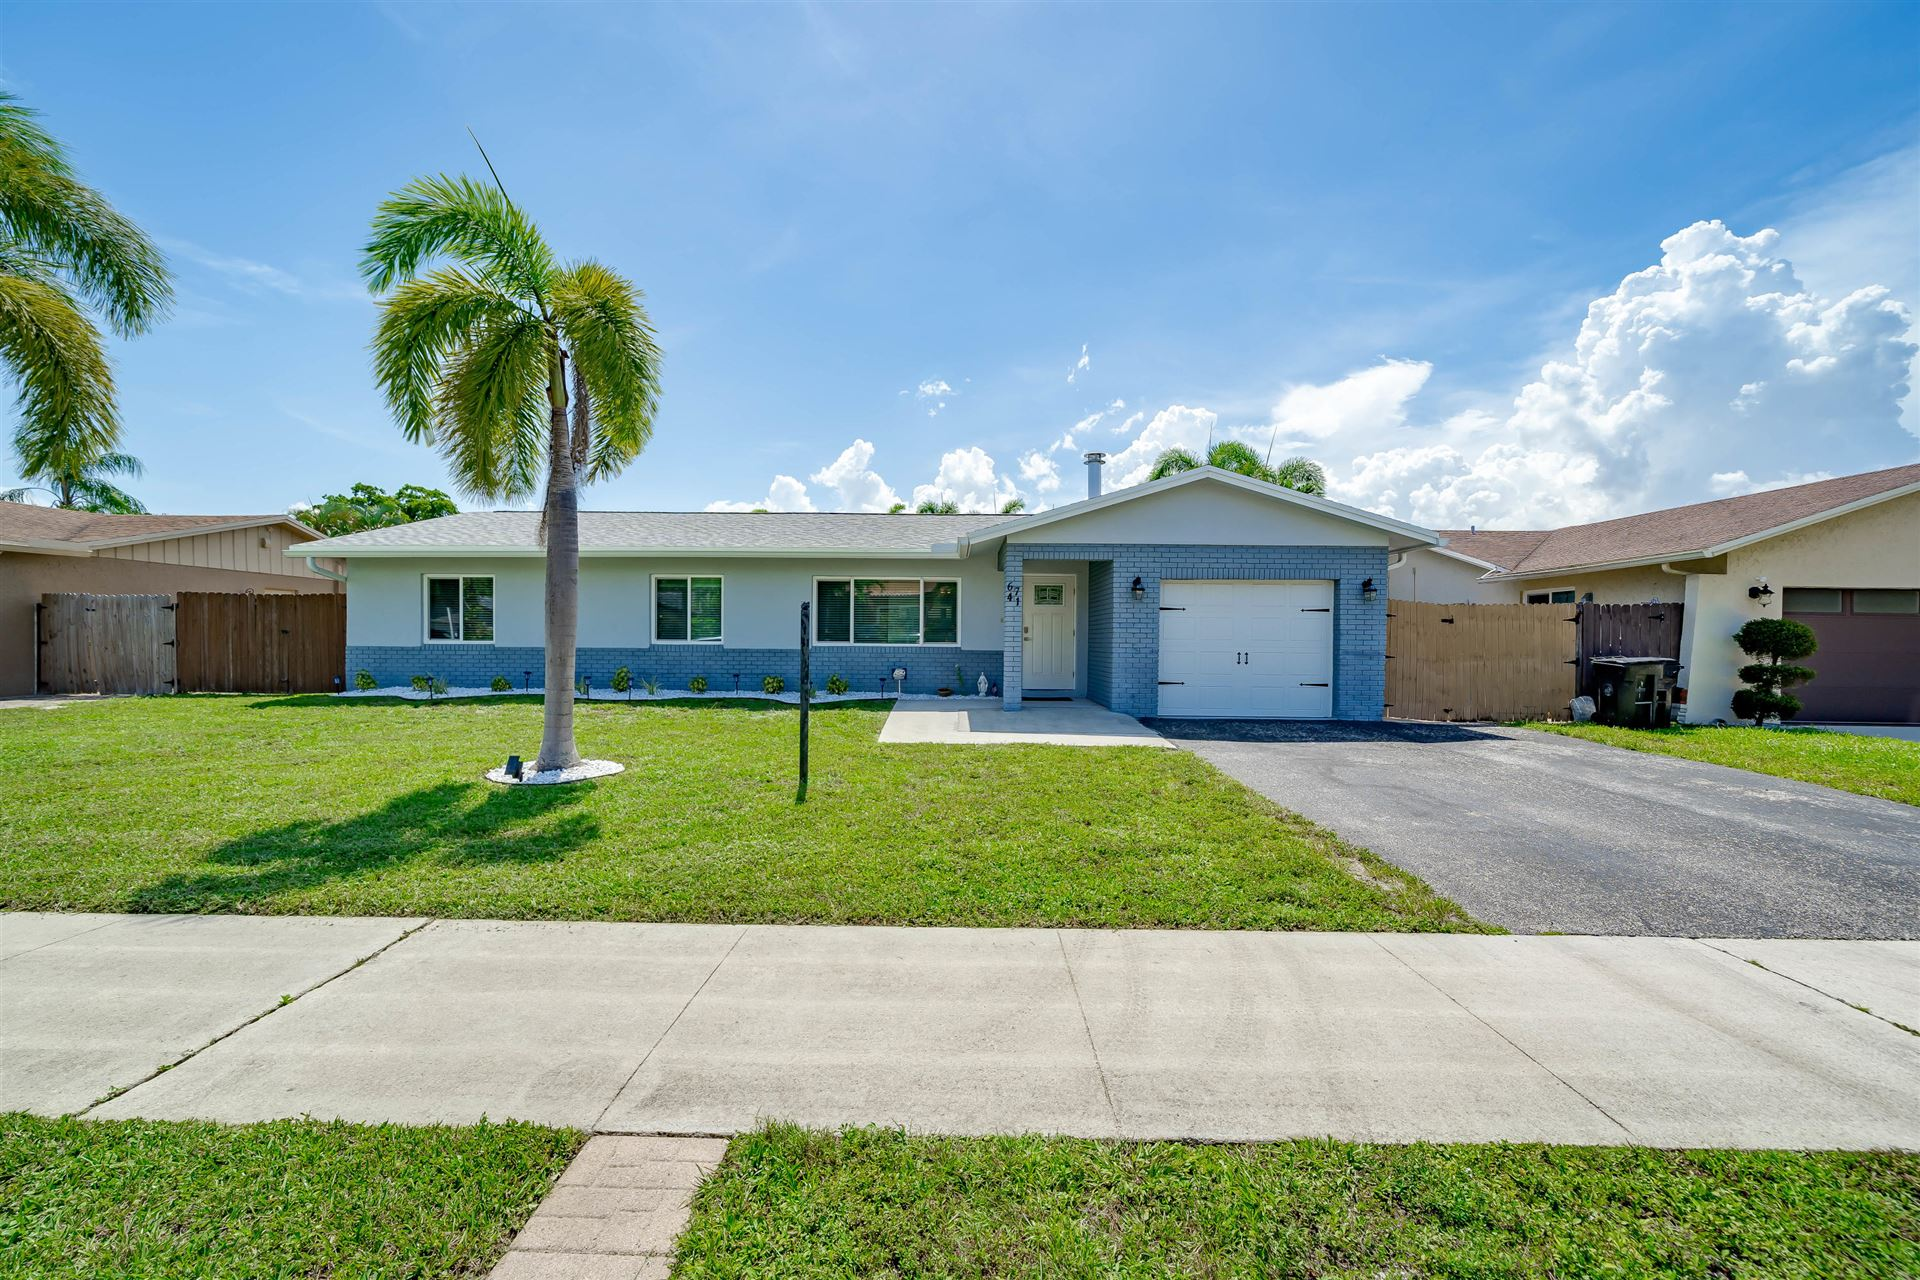 6741 NW 25th Way, Fort Lauderdale, FL 33309 - MLS#: RX-10710539